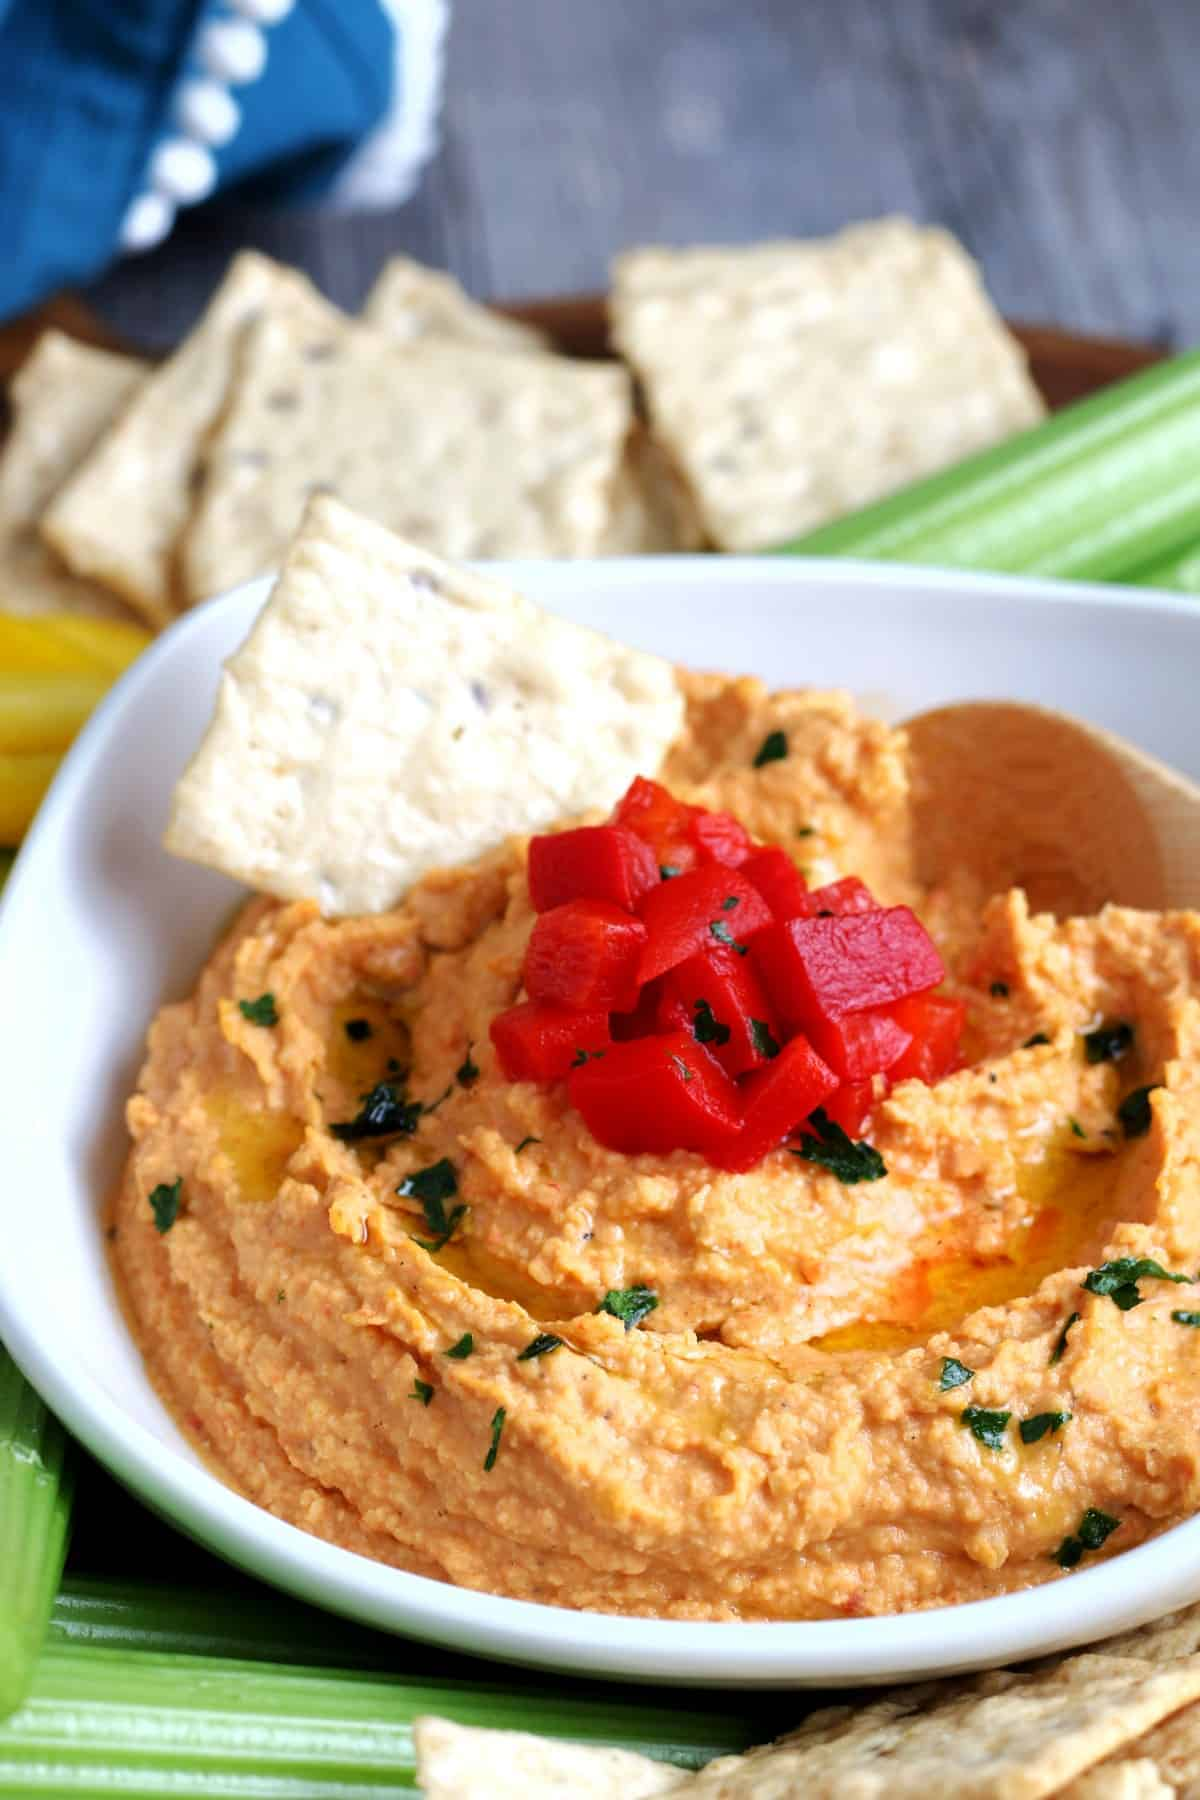 Extreme closeup photo of red bell hummus swirled with an olive oil drizzle.